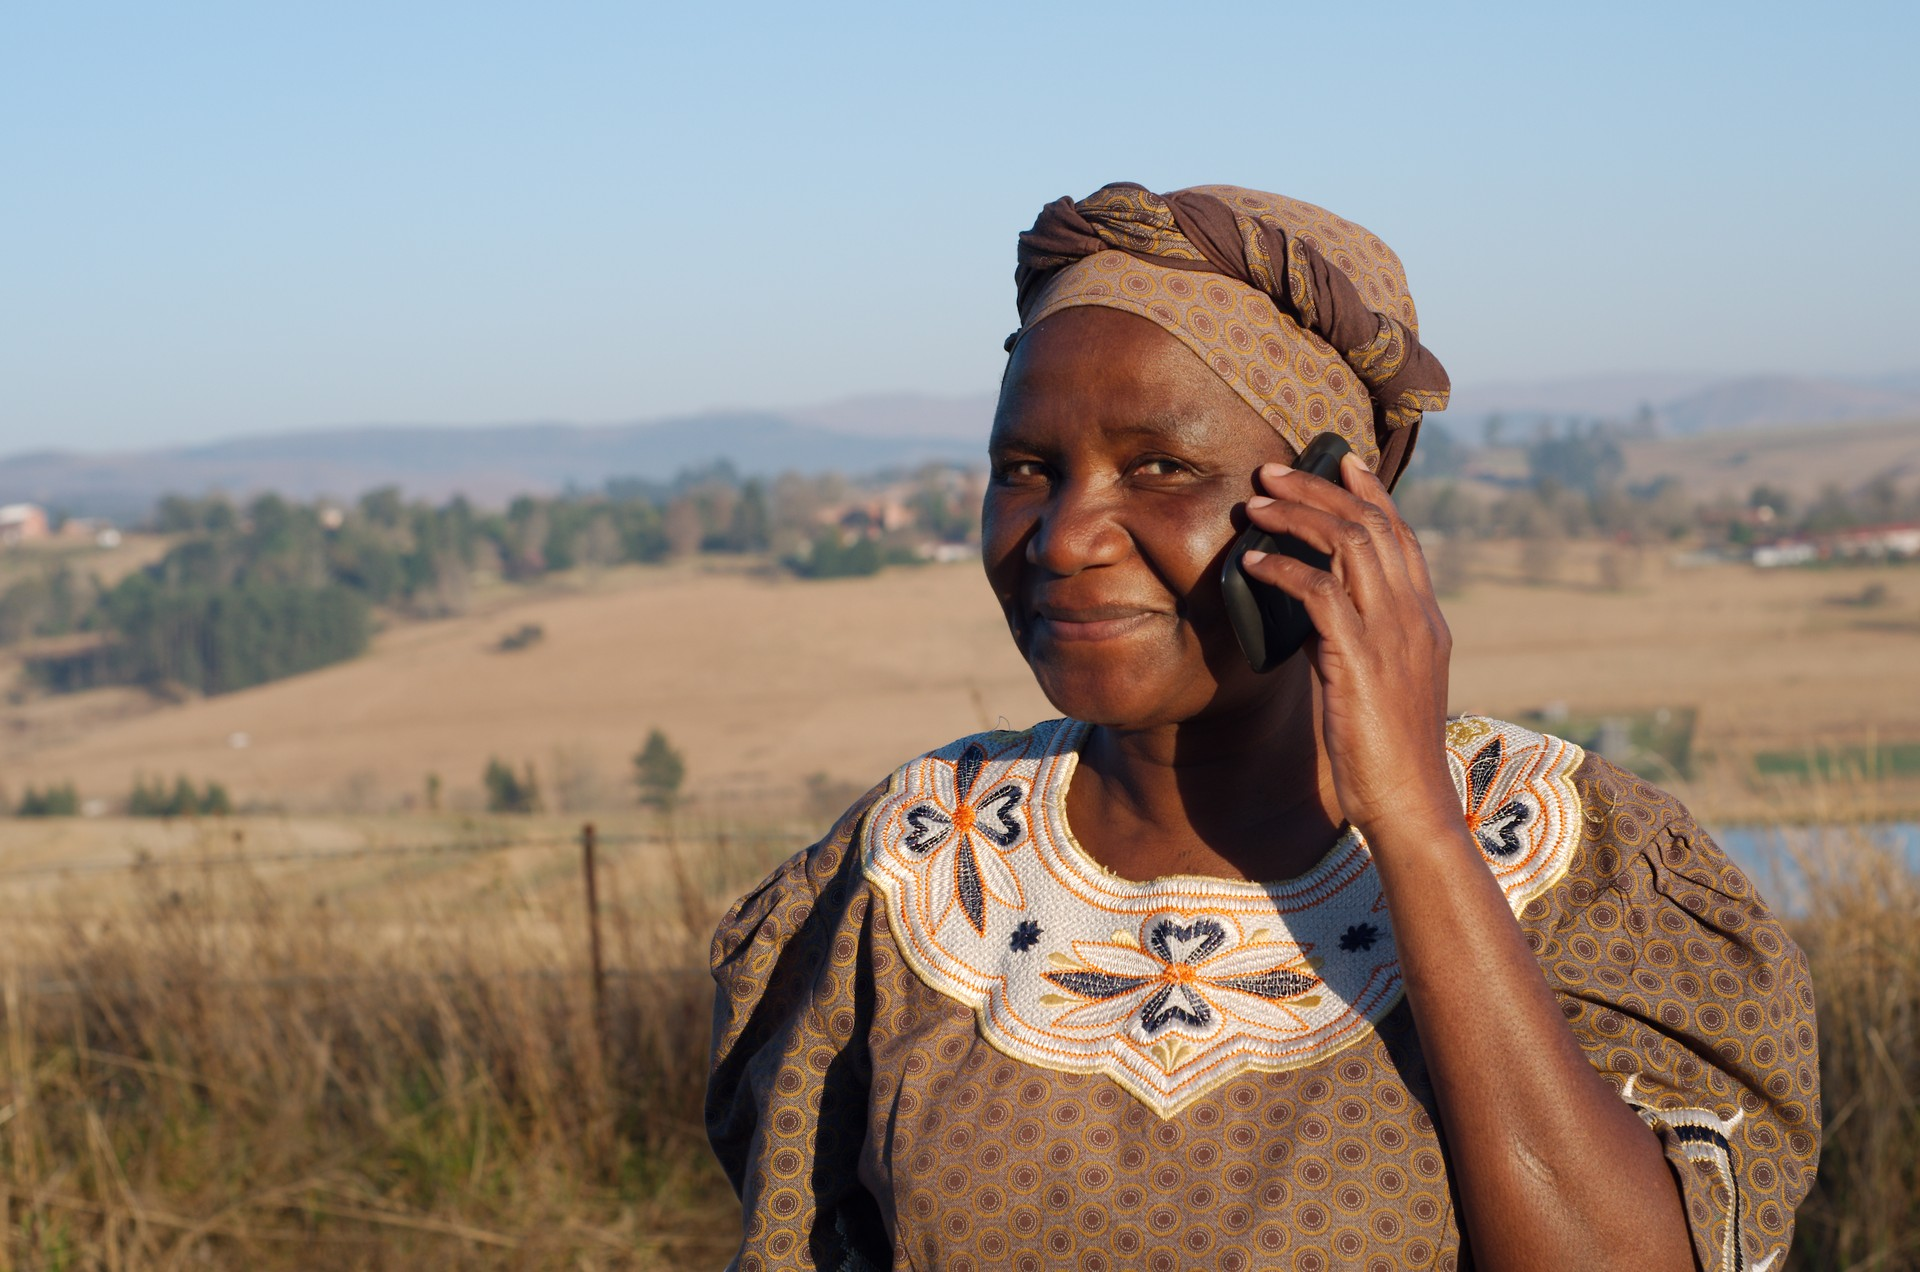 Zulu woman on mobile - South Africa